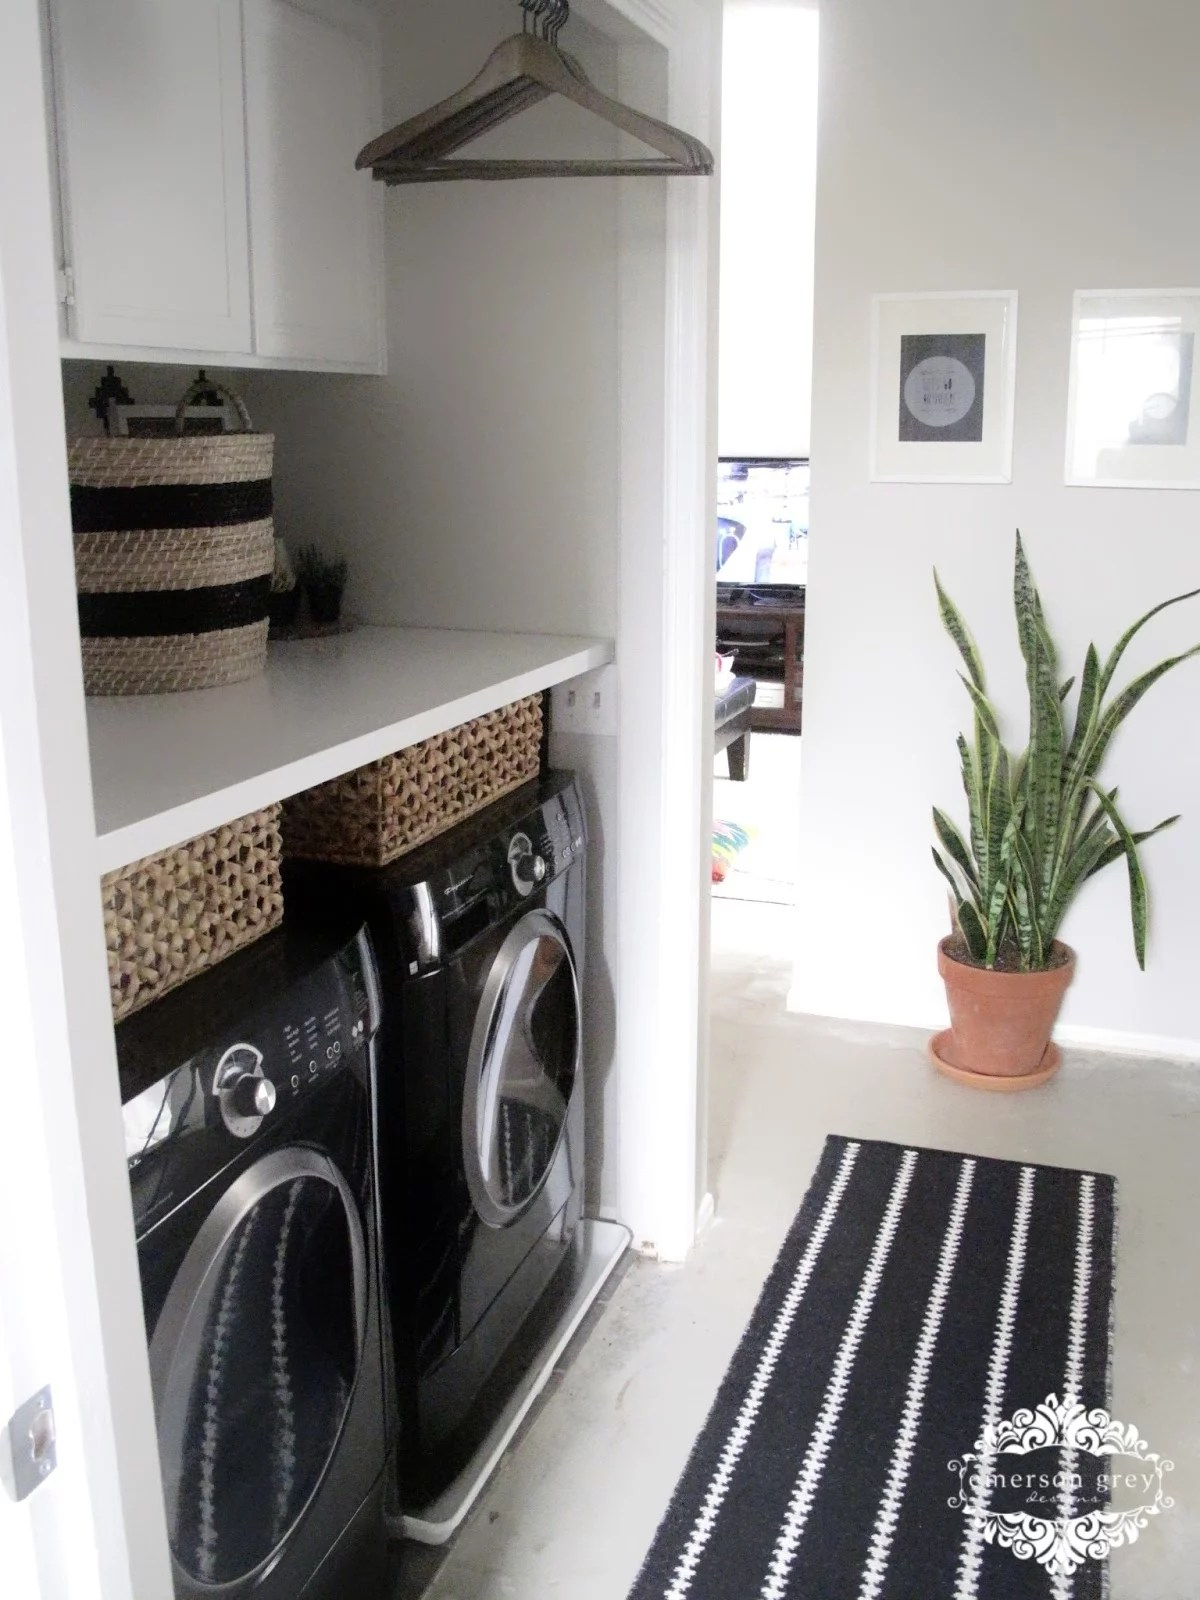 Laundry Room Makeover Ideas  POPSUGAR Home Australia